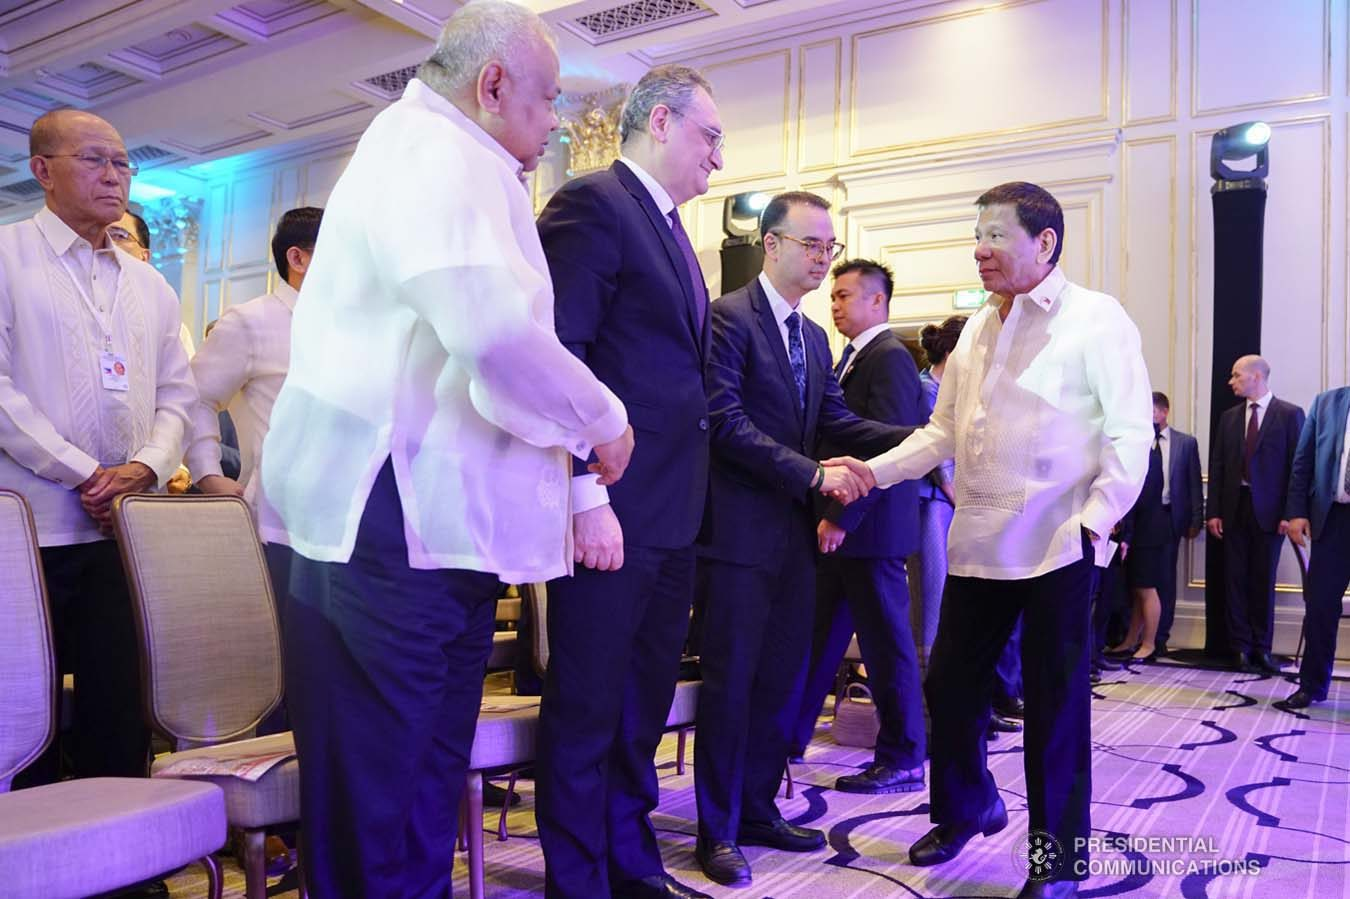 President Rodrigo Roa Duterte greets the guests during the Philippine Cultural Gala Performance at the Four Seasons Hotel in Moscow, Russian Federation on October 4, 2019. JOEY DALUMPINES/PRESIDENTIAL PHOTO